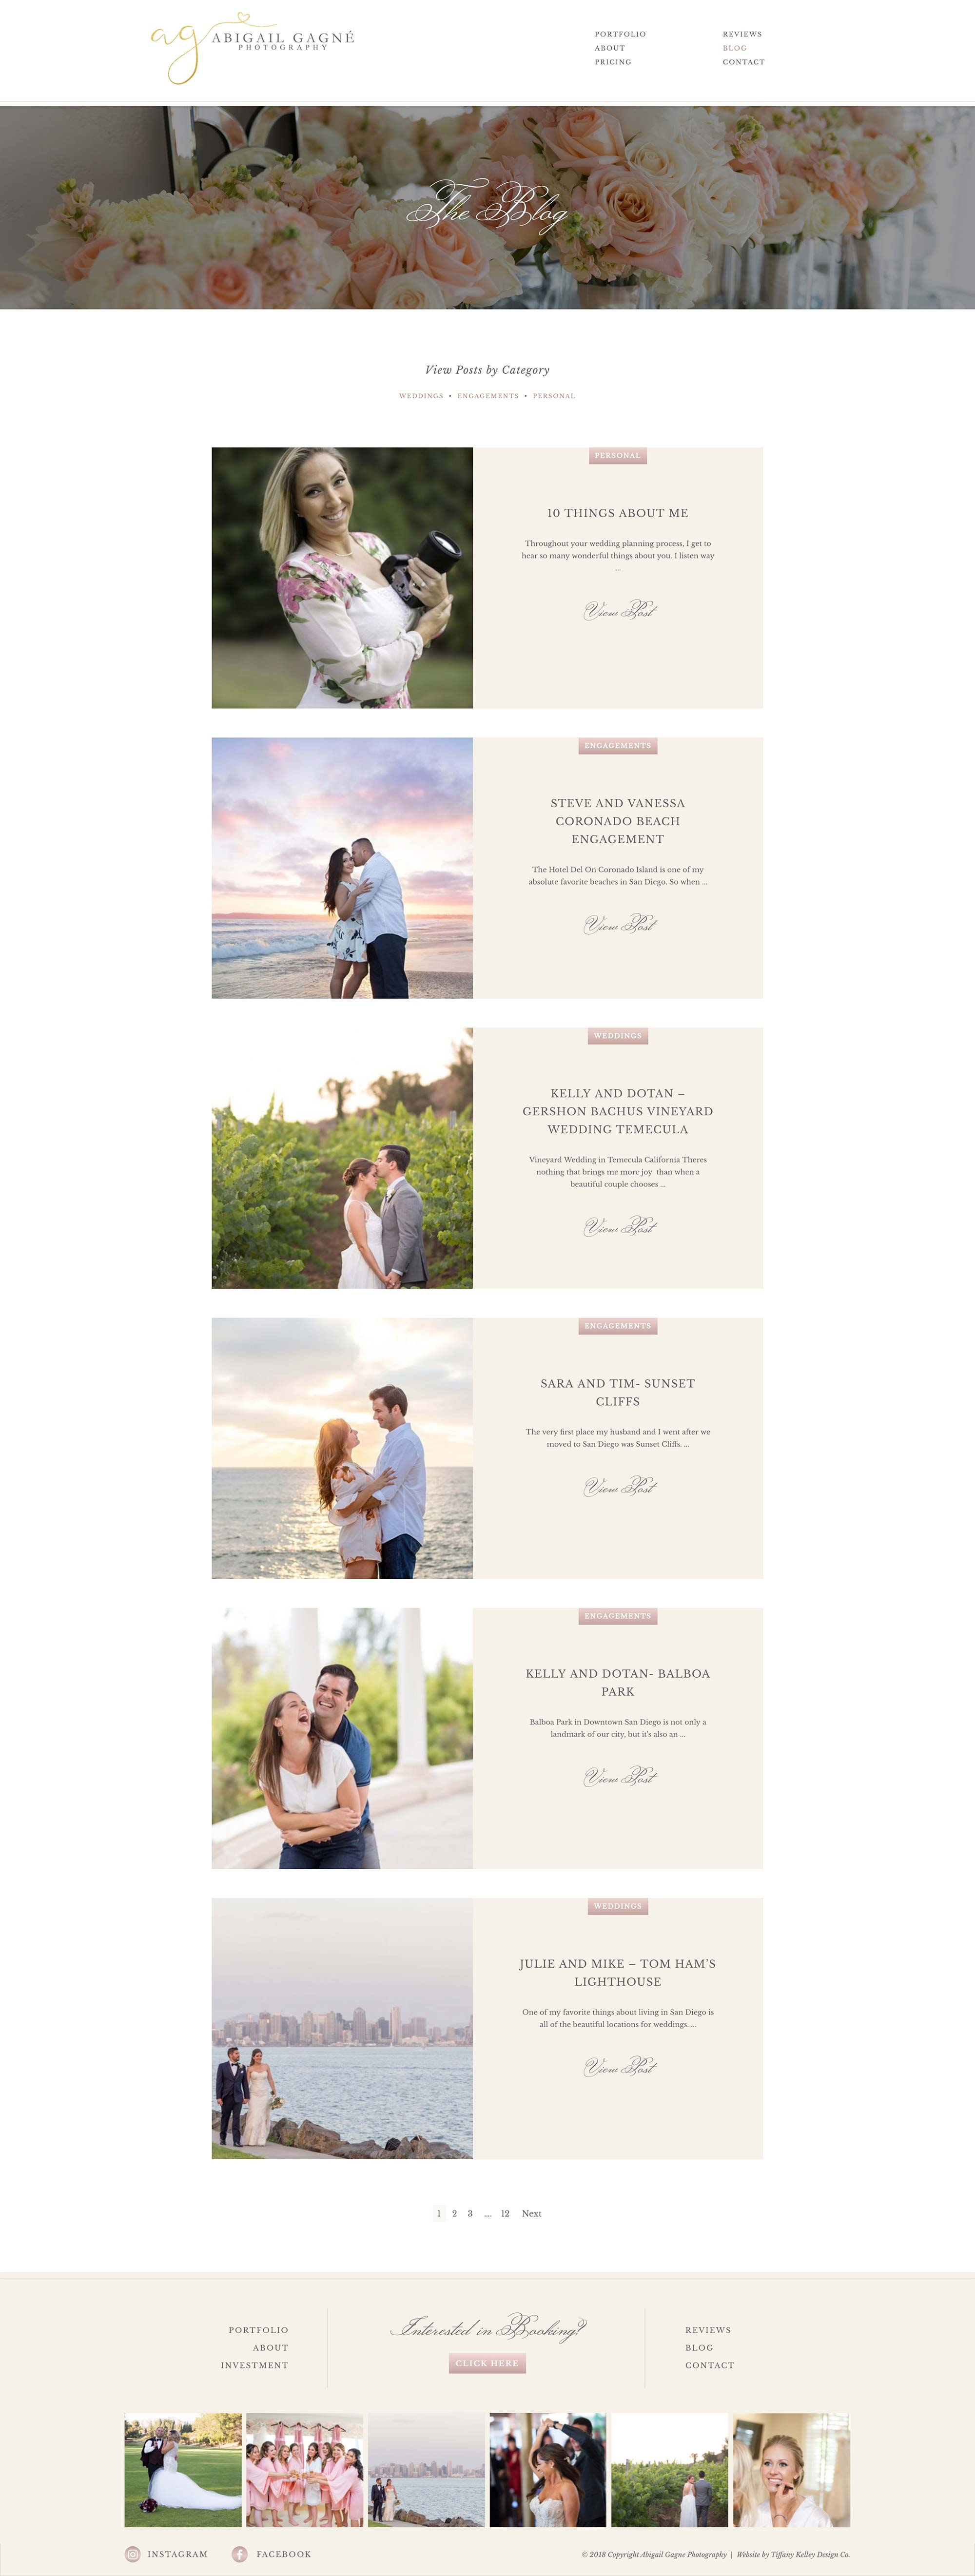 blog web design abigail gagne photography